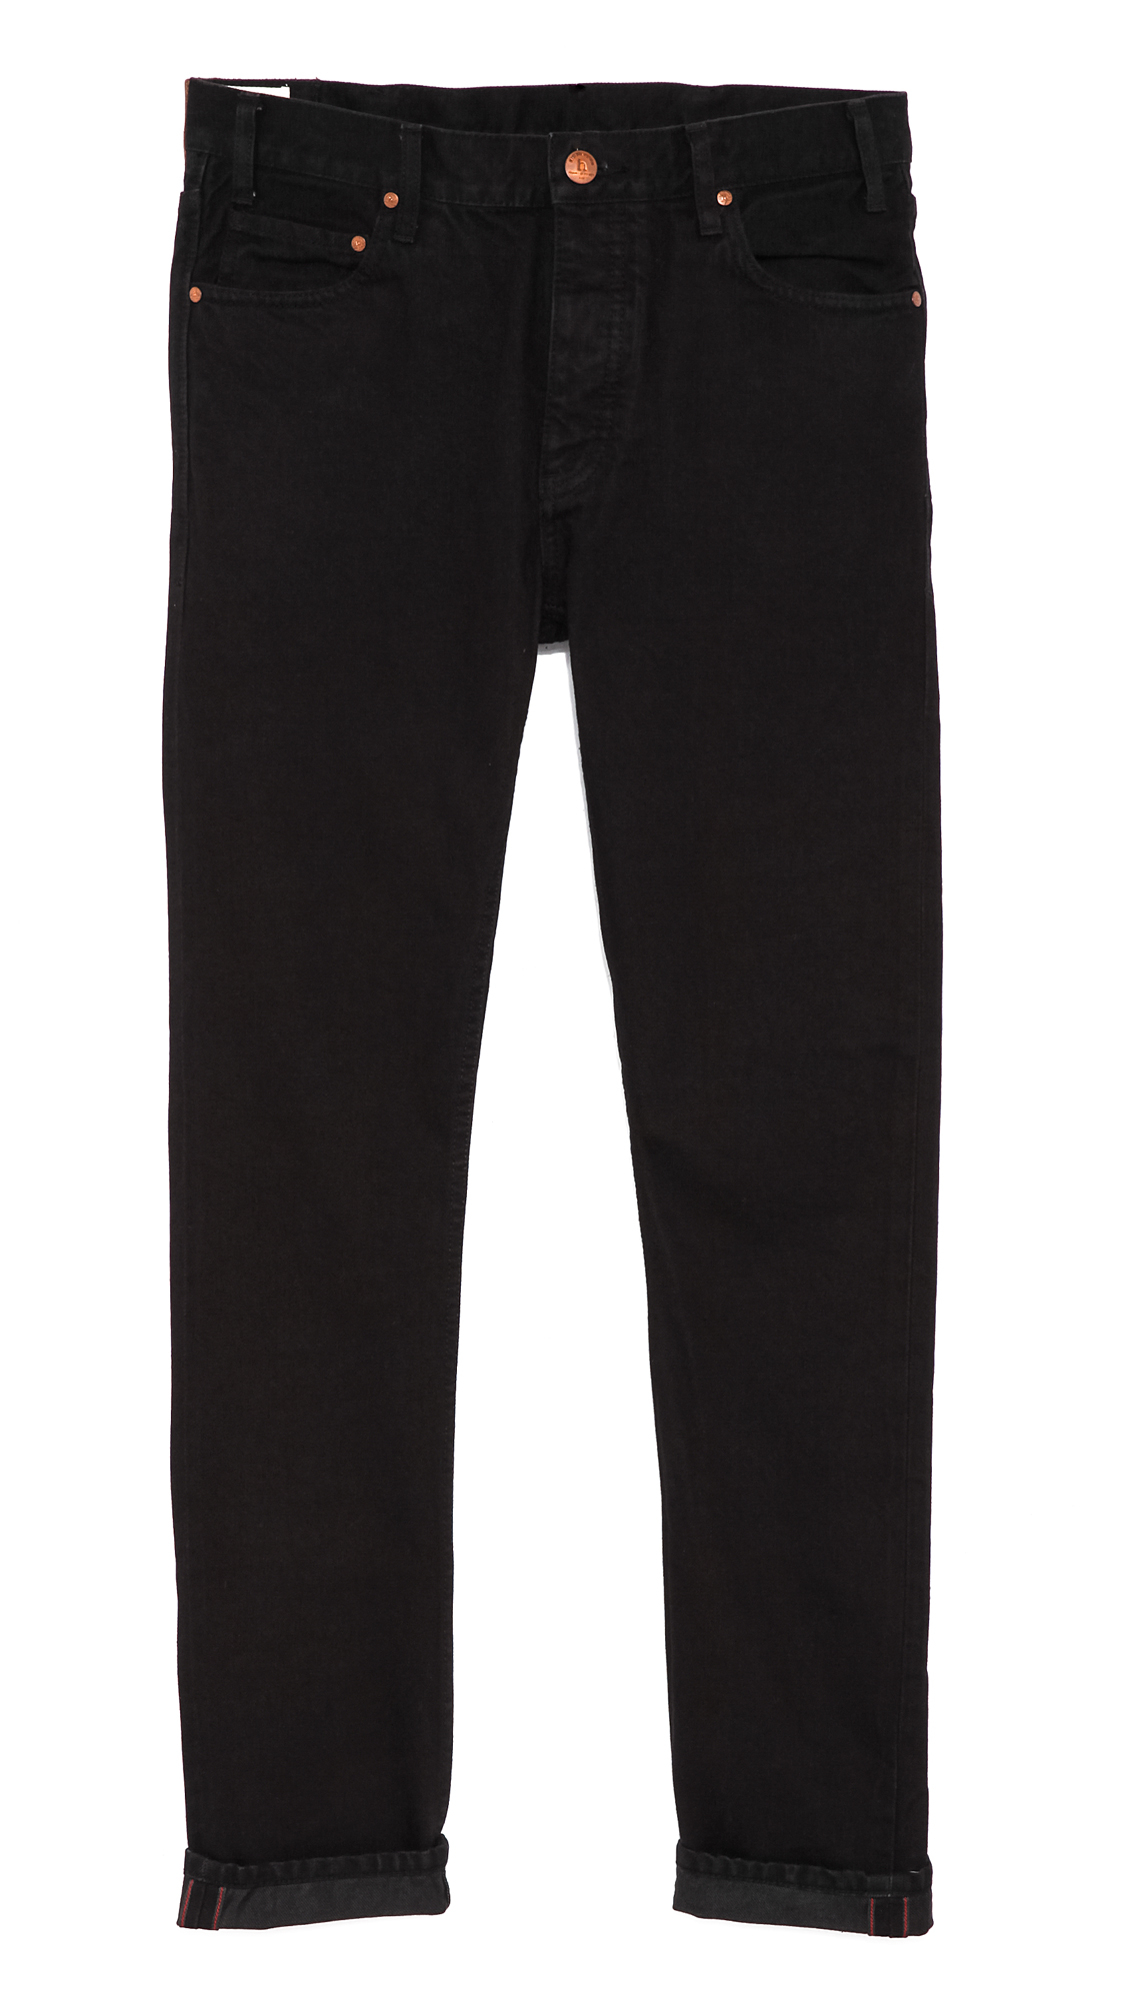 Fitted Black Jeans